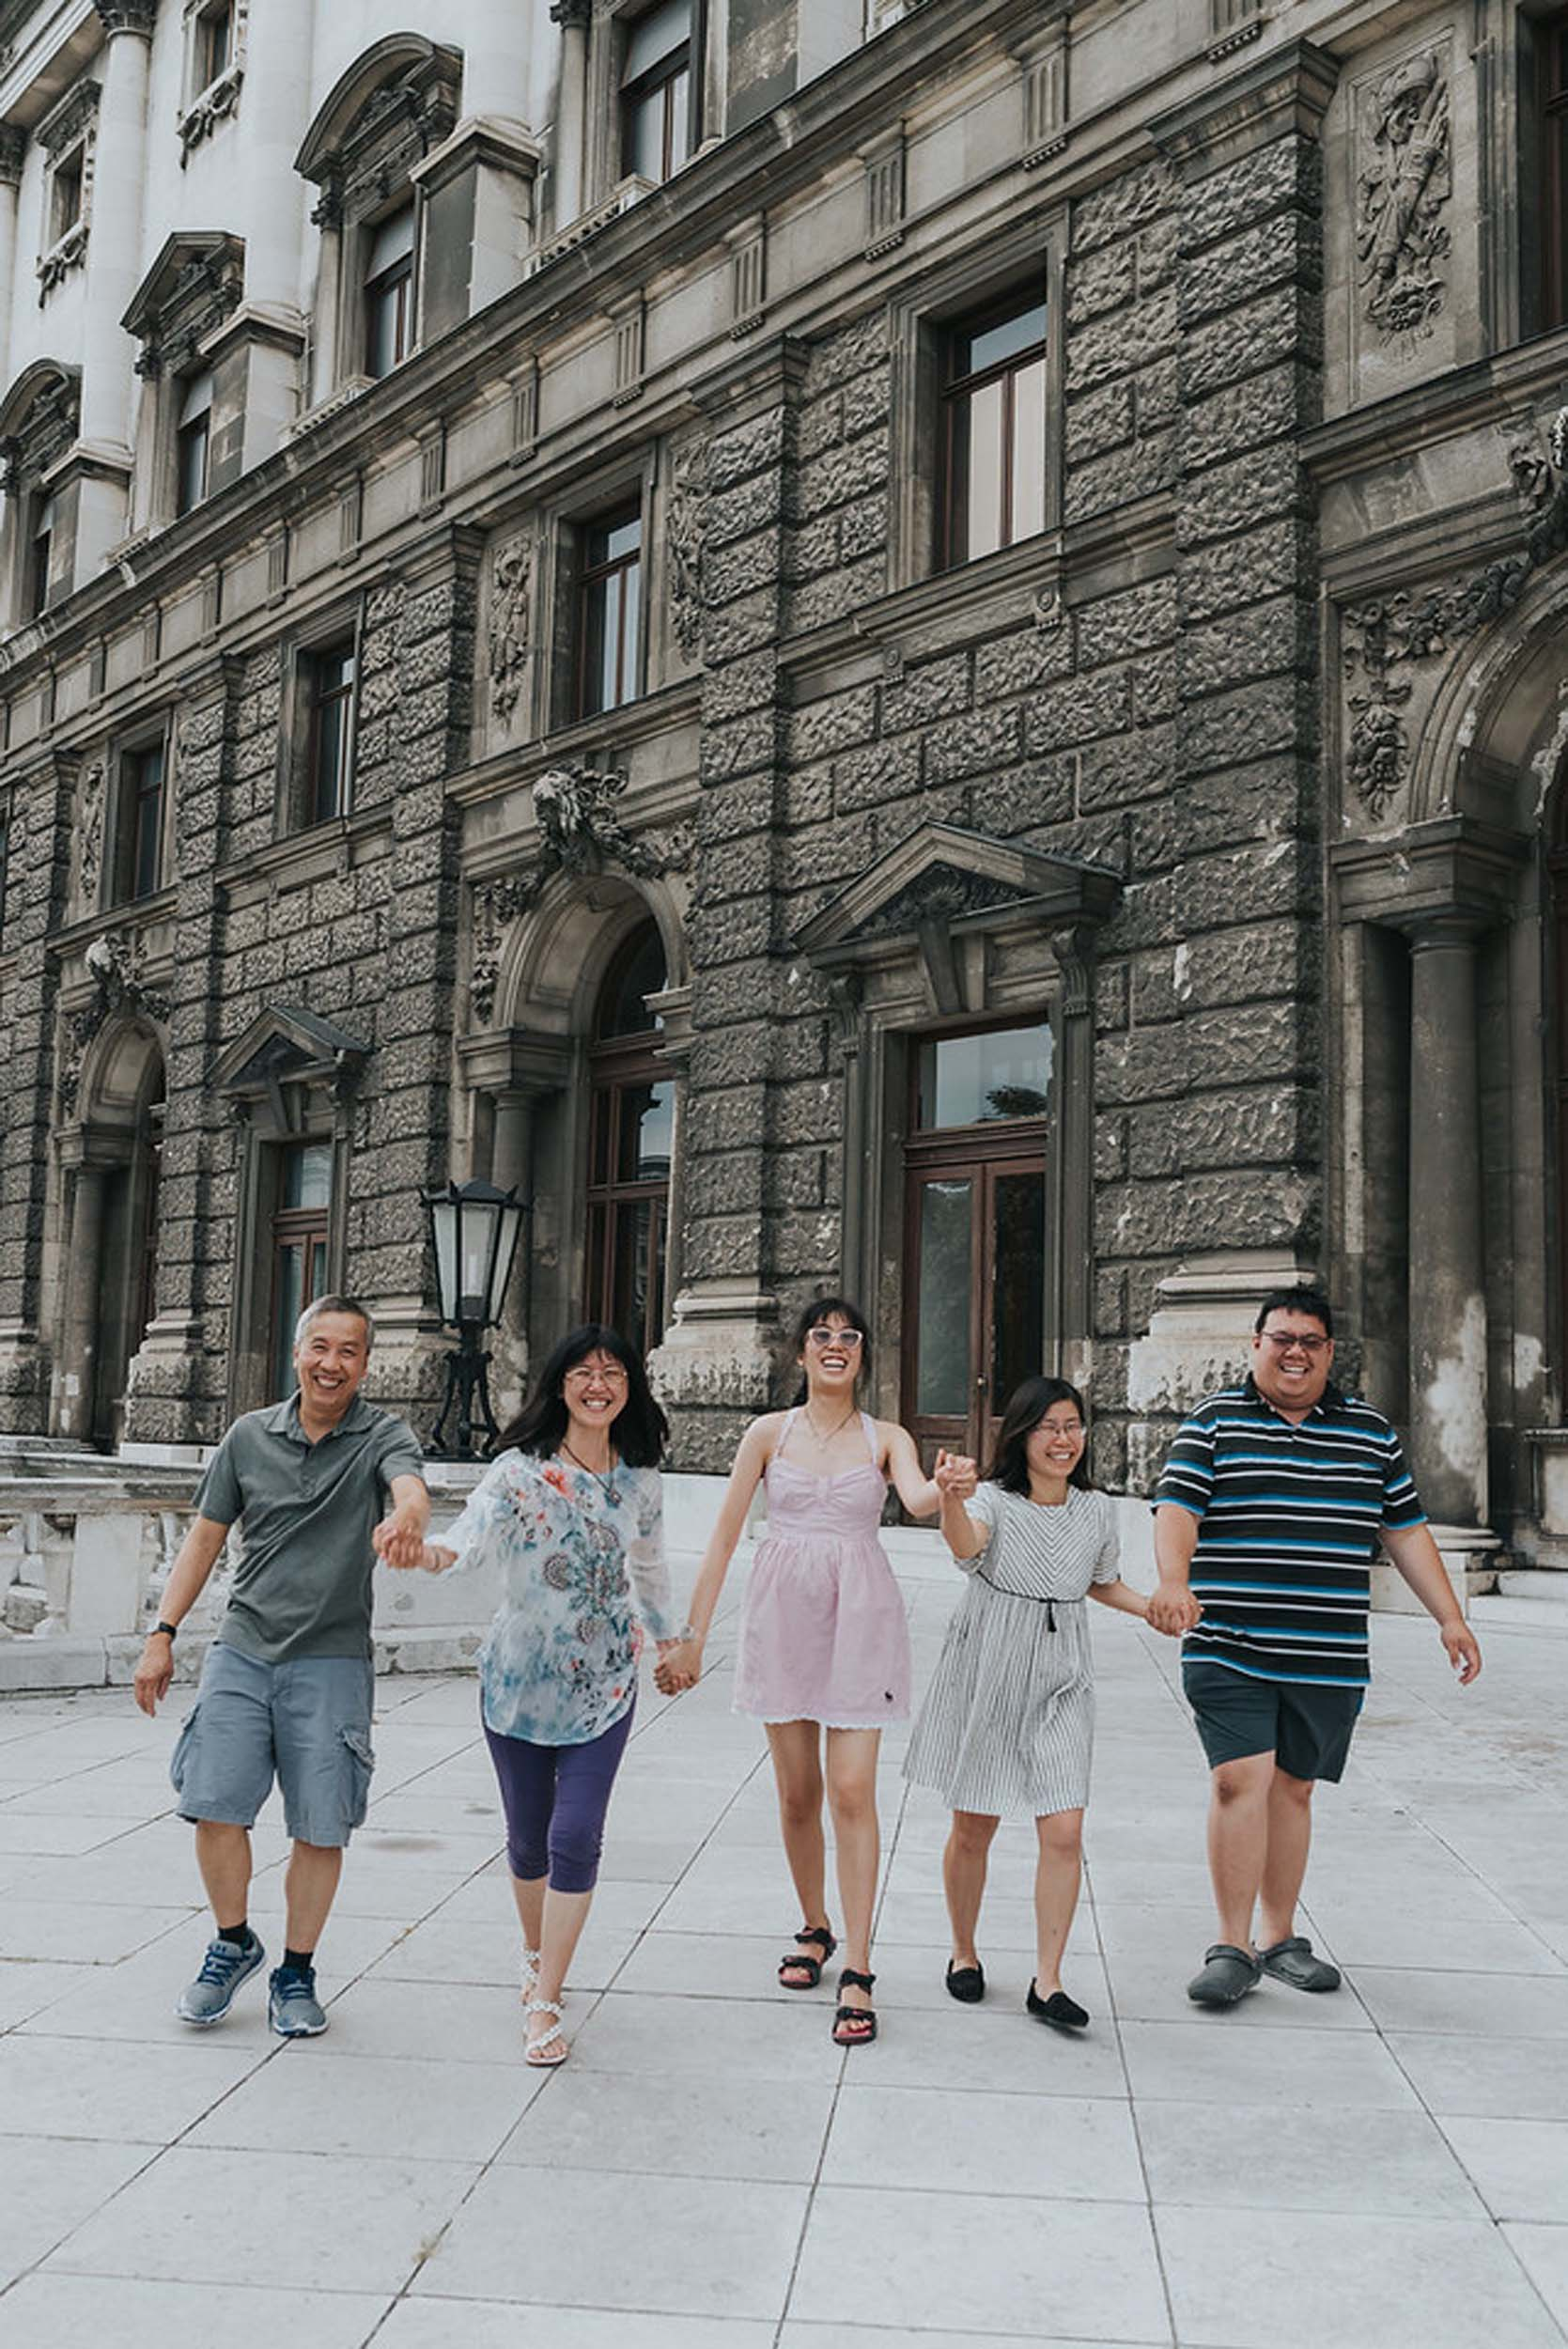 Family holding hands and walking together on a family trip in Vienna, Austria